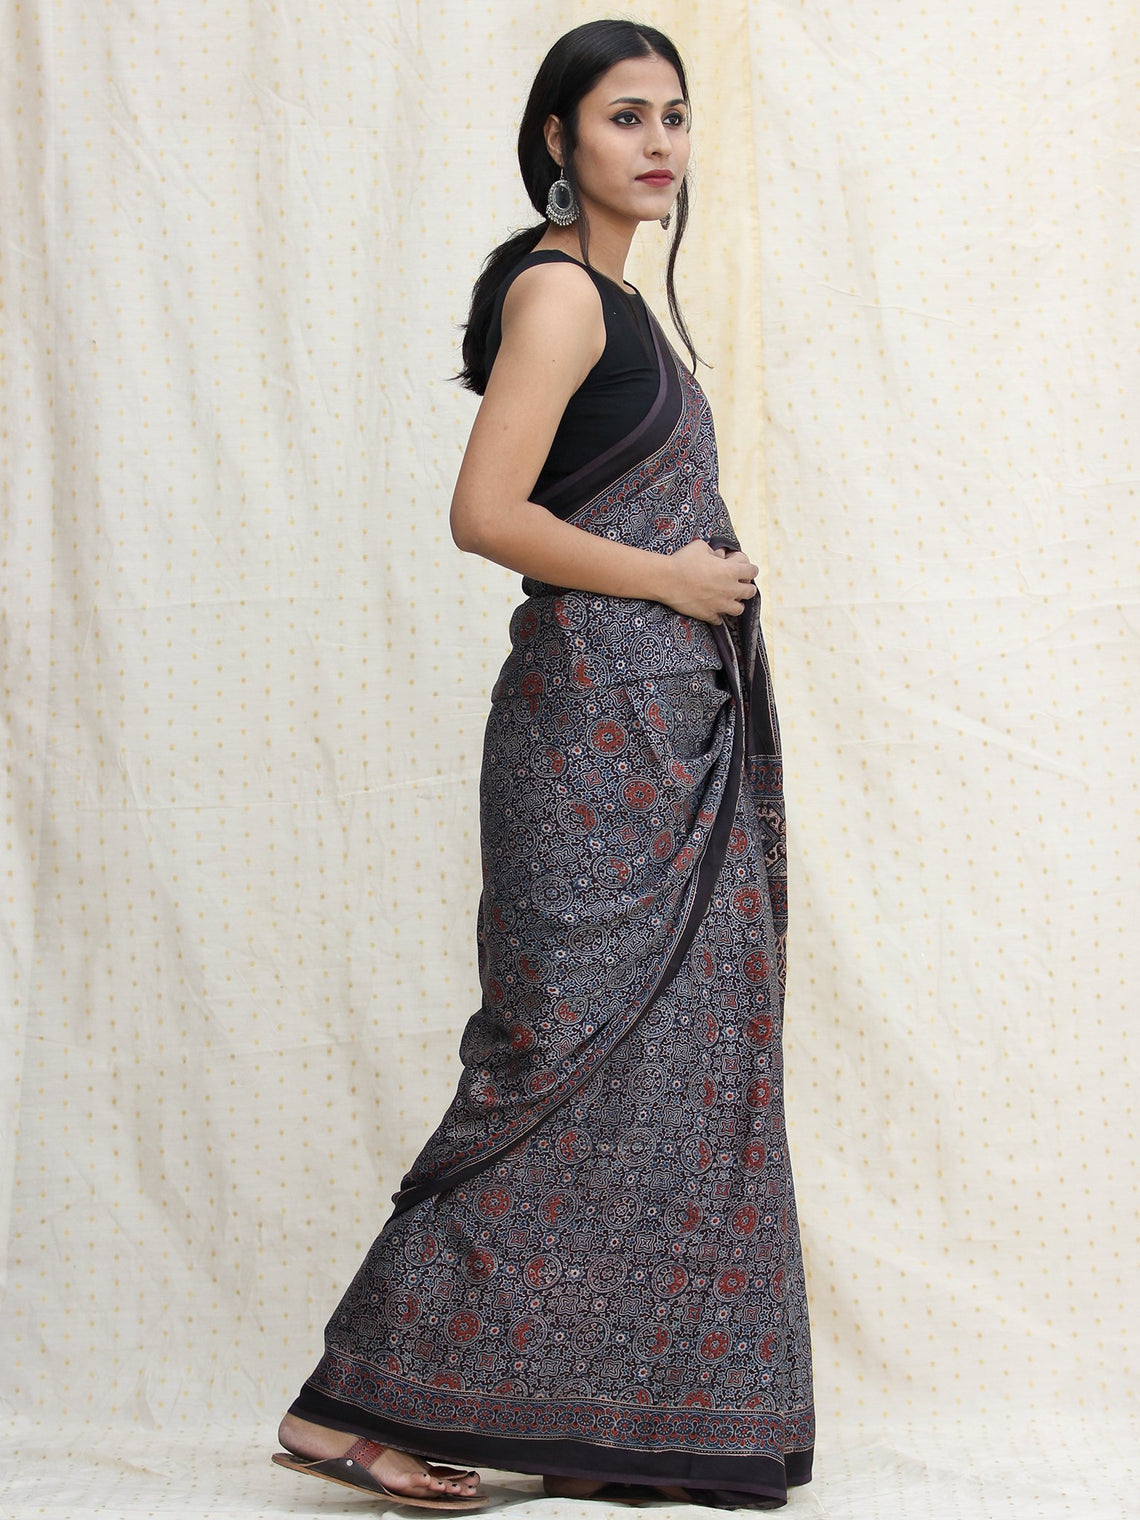 Indigo Charcoal Black Red Ajrakh Hand Block Printed Modal Silk Saree - S031704122